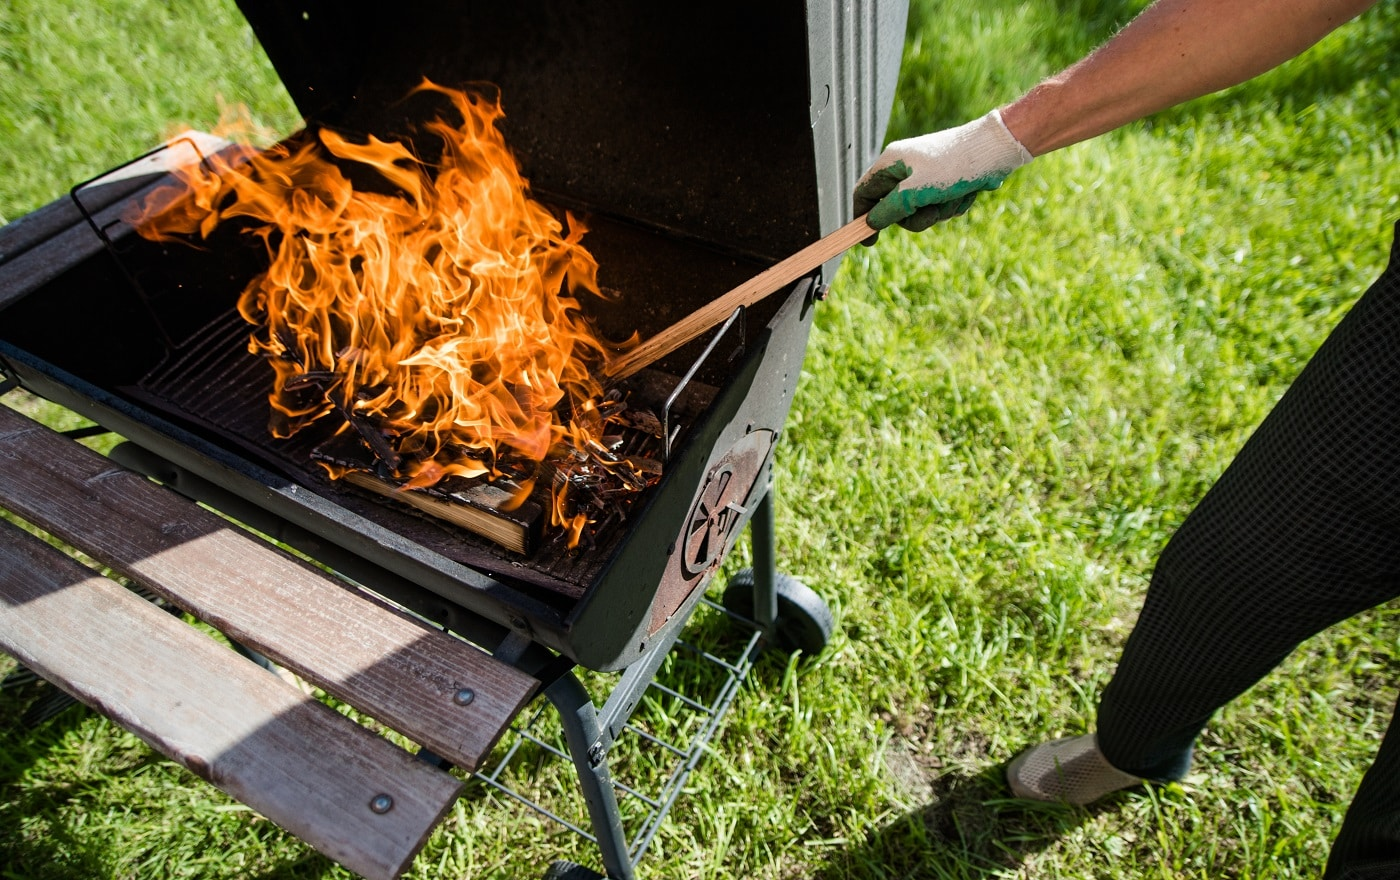 A man in gloves straightens burning wood in the grill. Summer barbecue. General form.